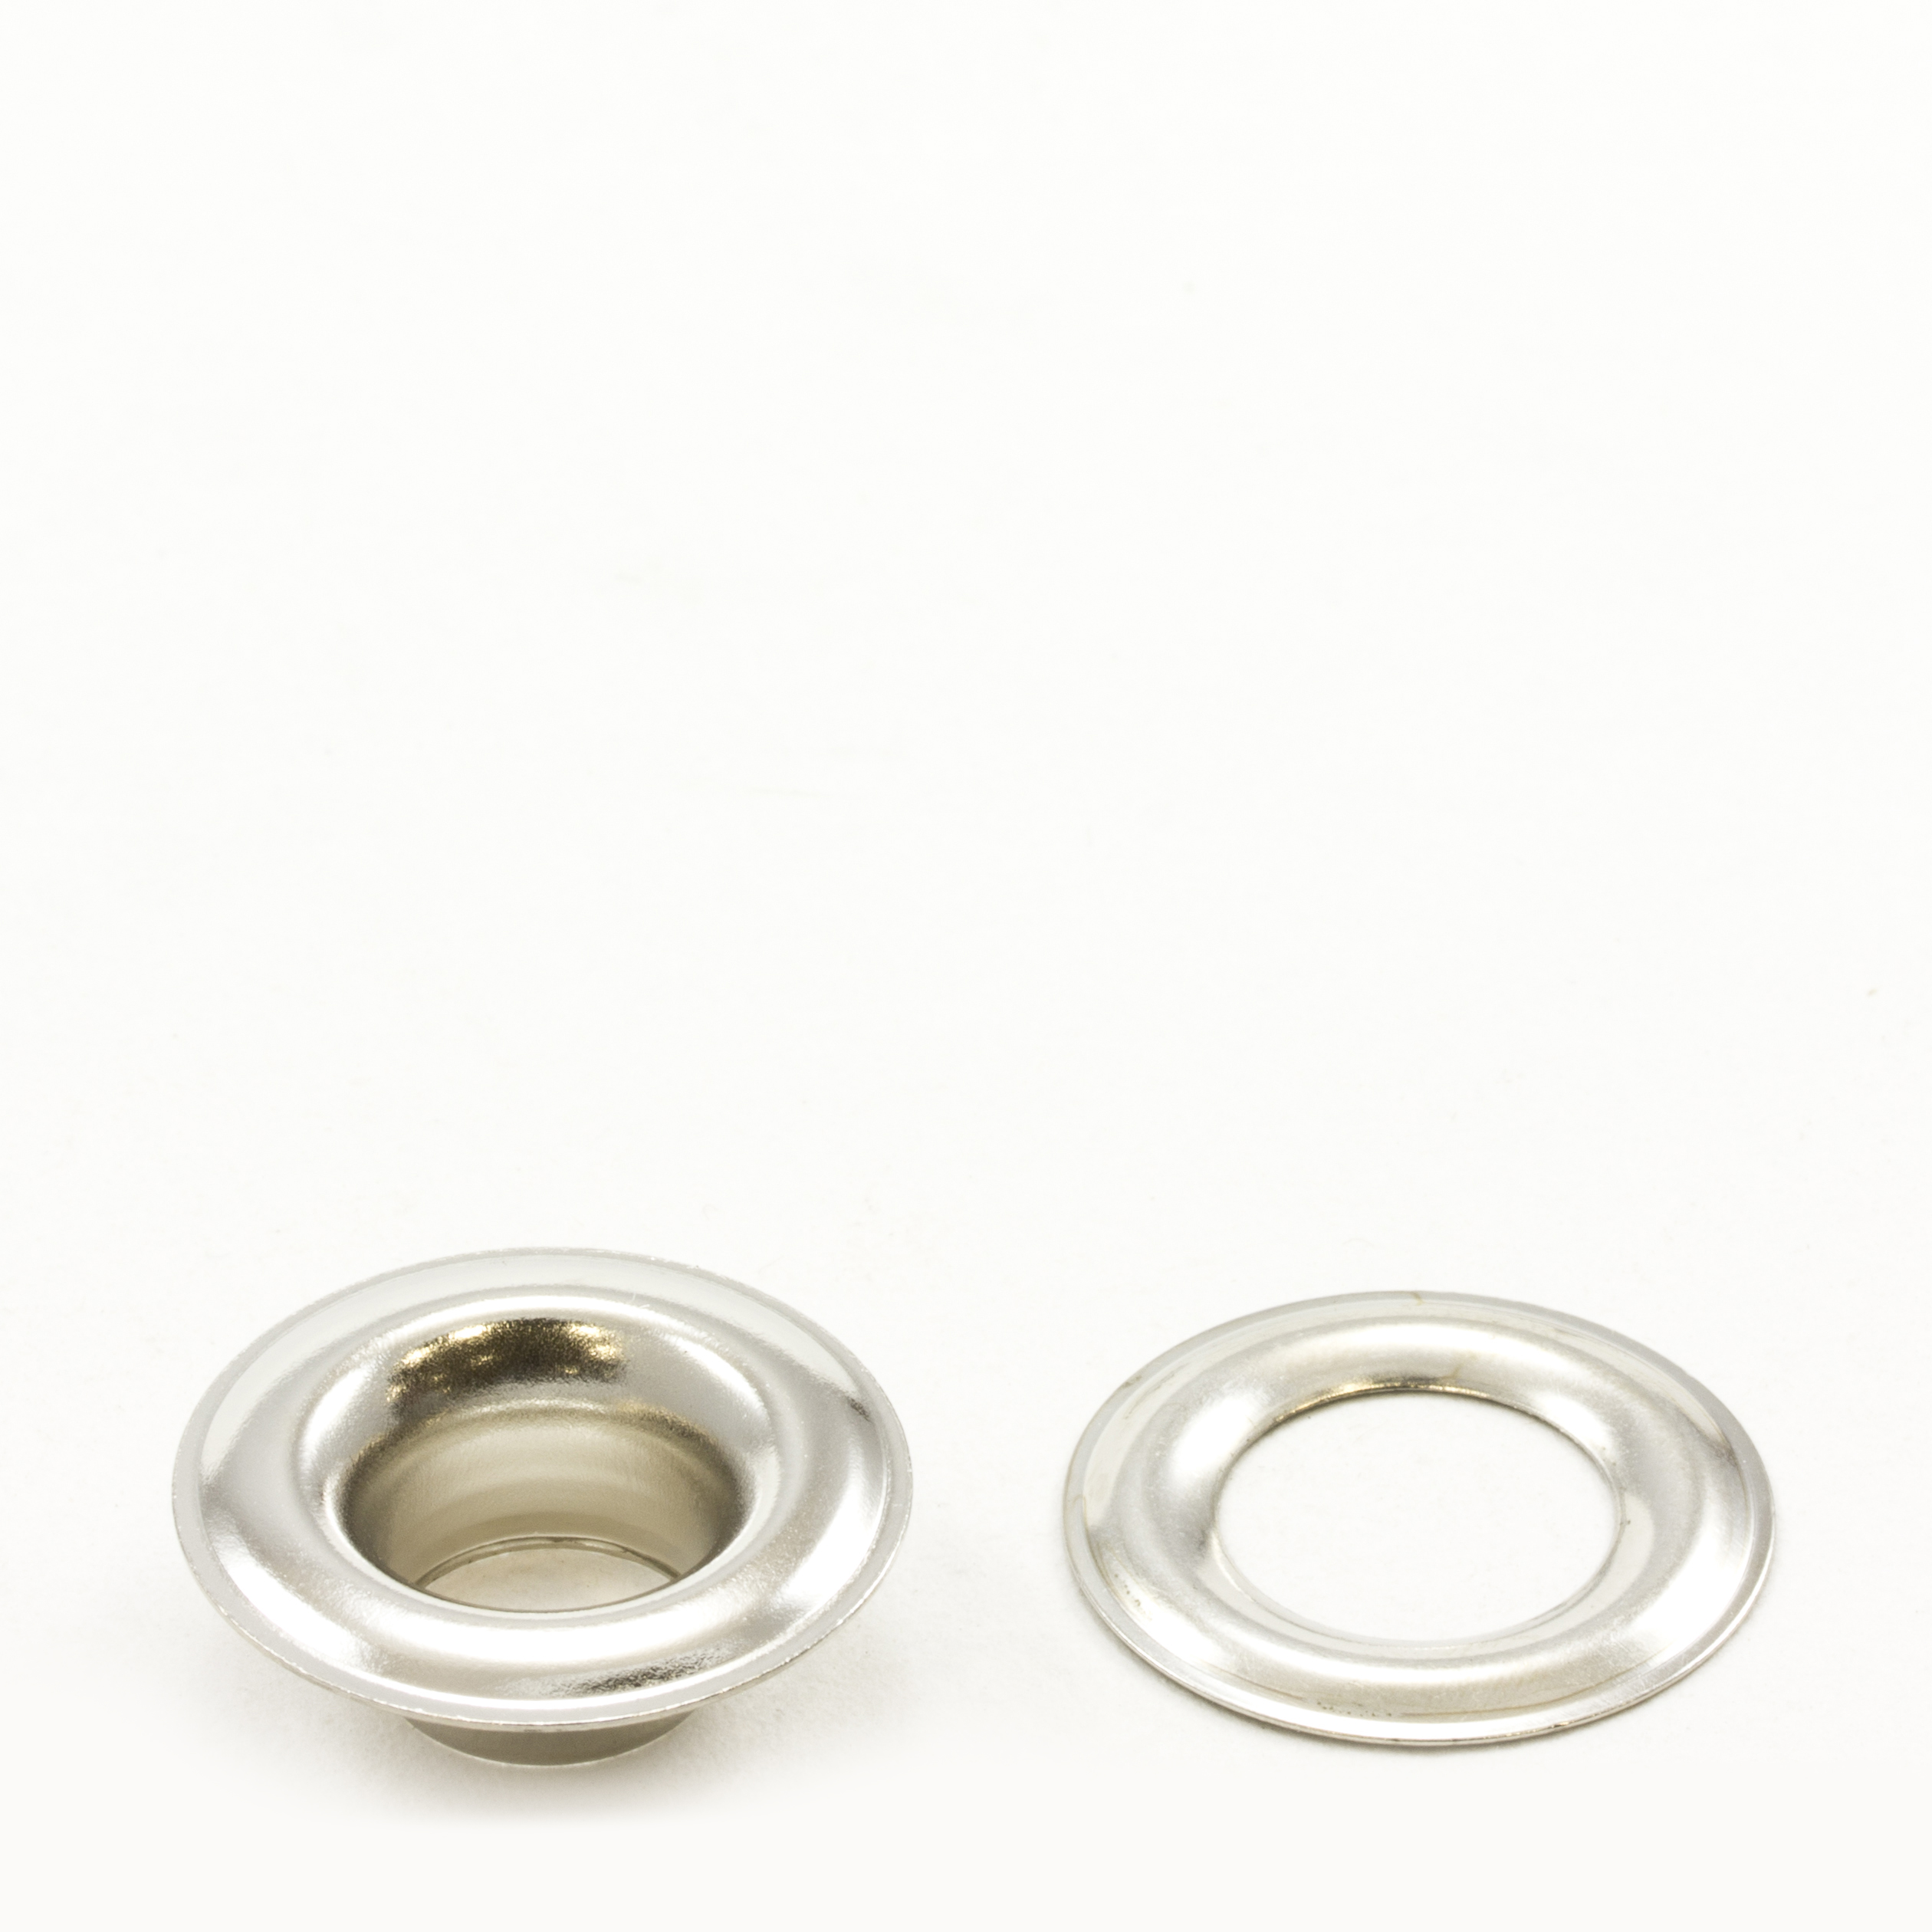 Thumbnail Grommet with Plain Washer #3 Brass Nickel Plated 7/16 1